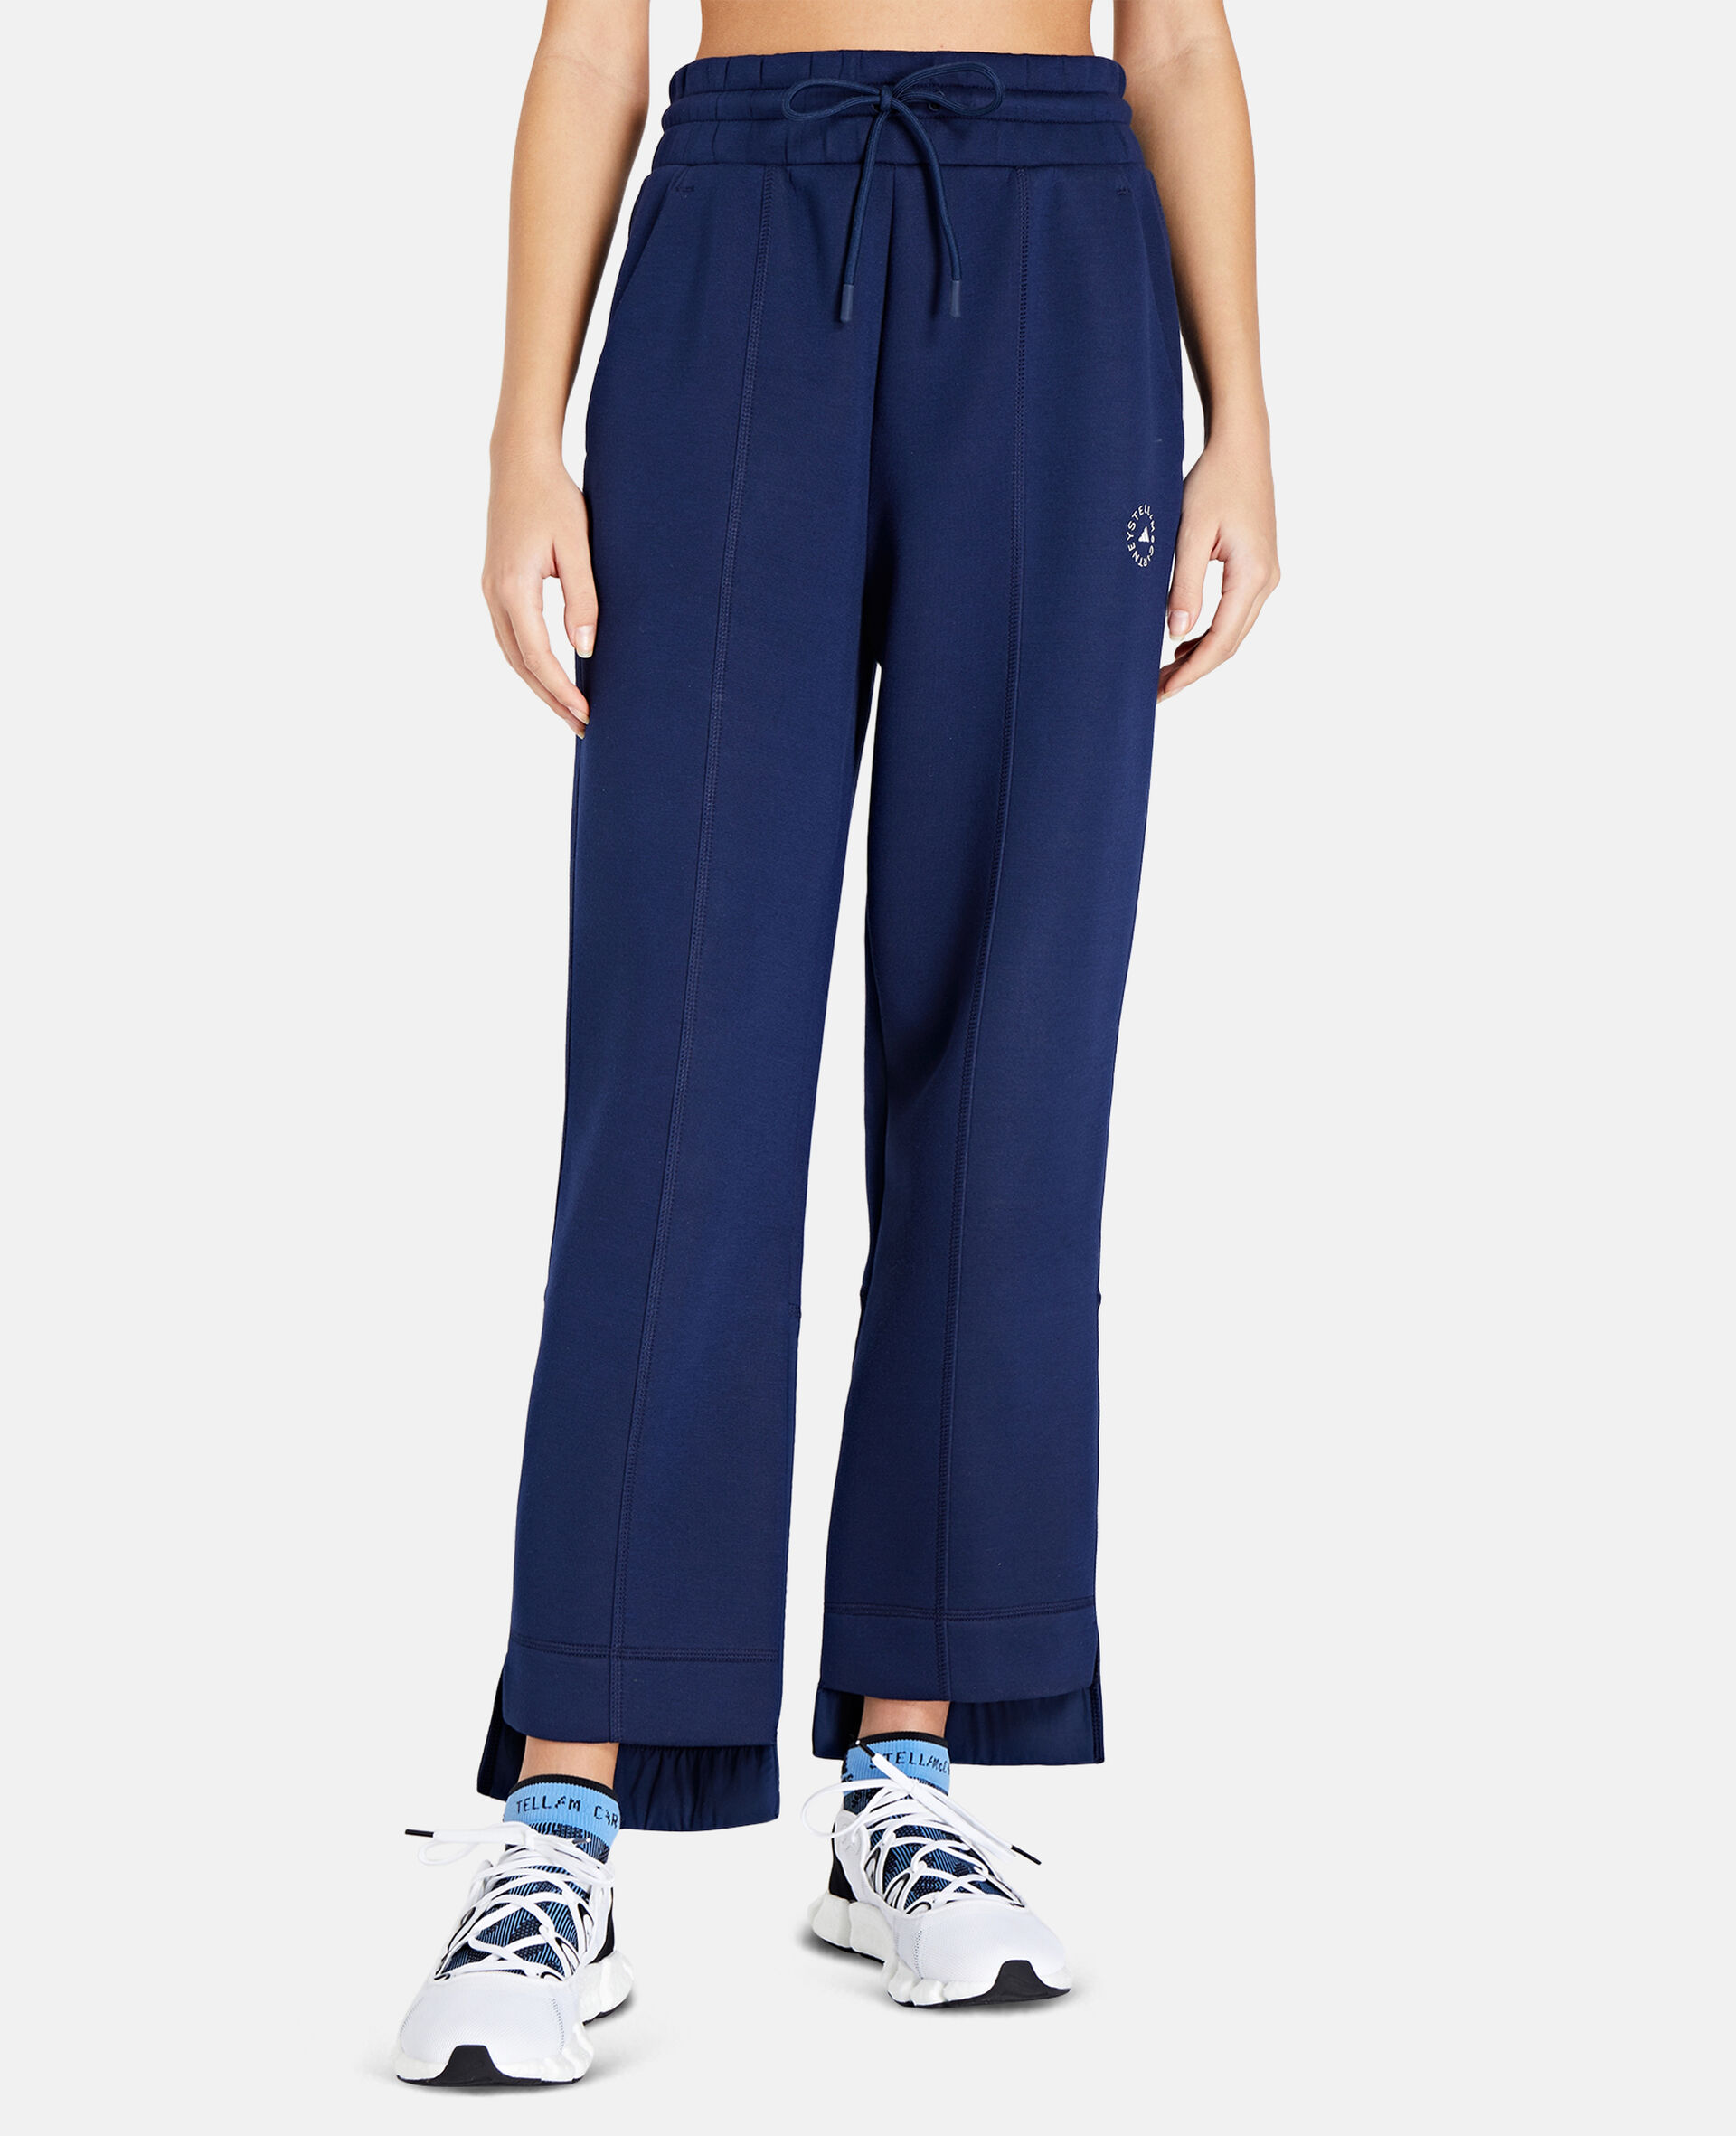 Blue Tapered Sweatpants-Blue-large image number 4